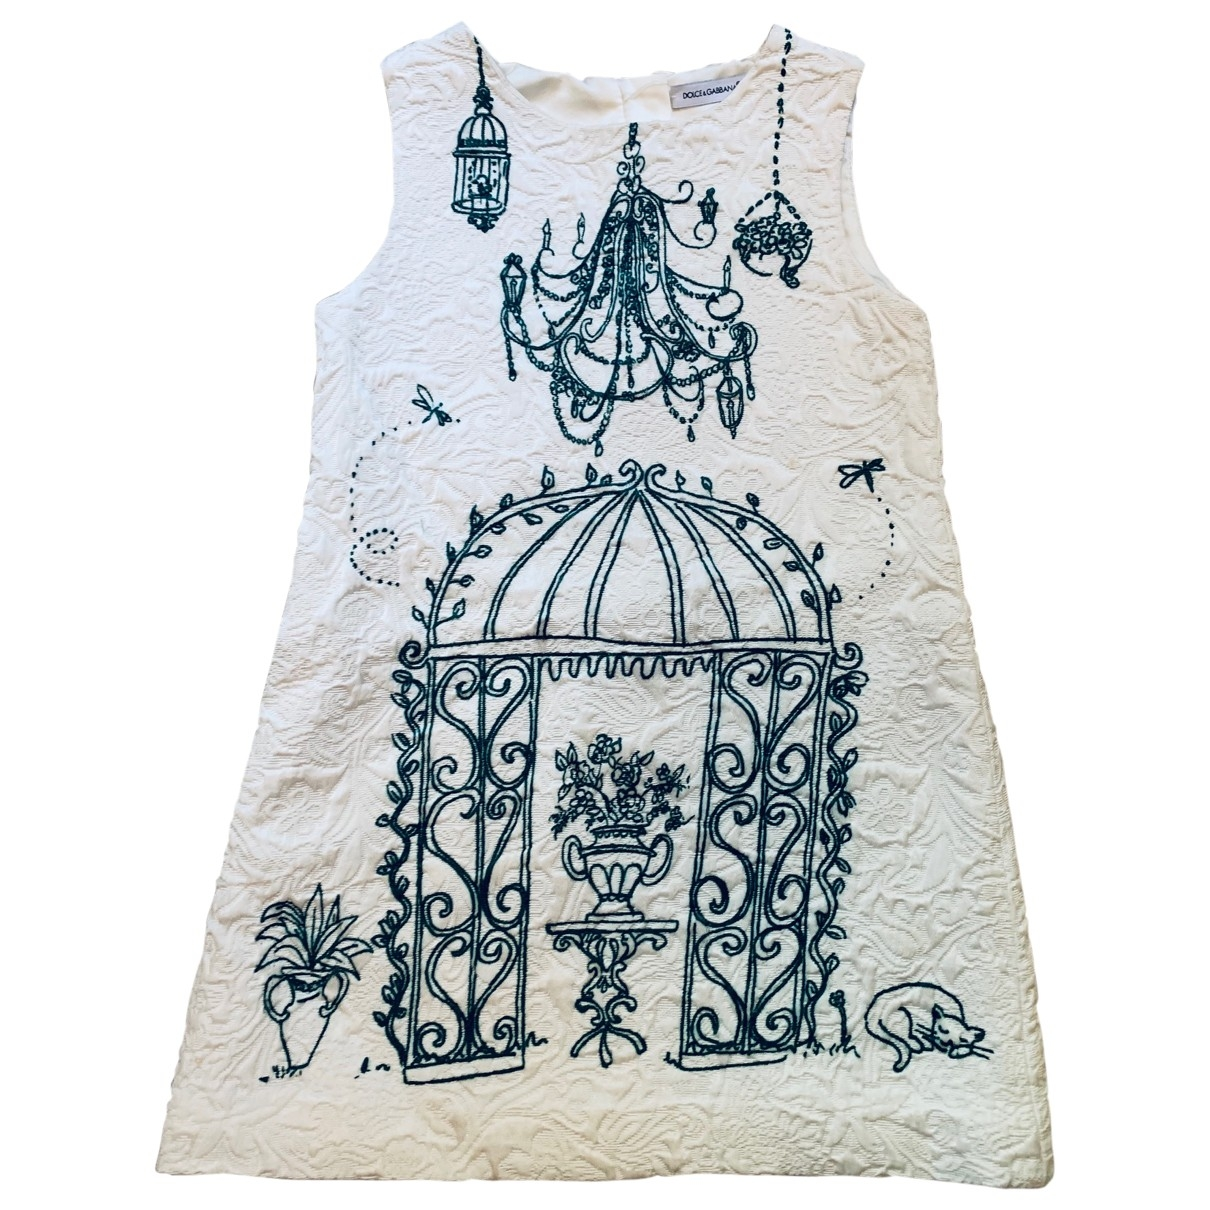 Dolce & Gabbana \N White Cotton dress for Kids 4 years - until 40 inches UK